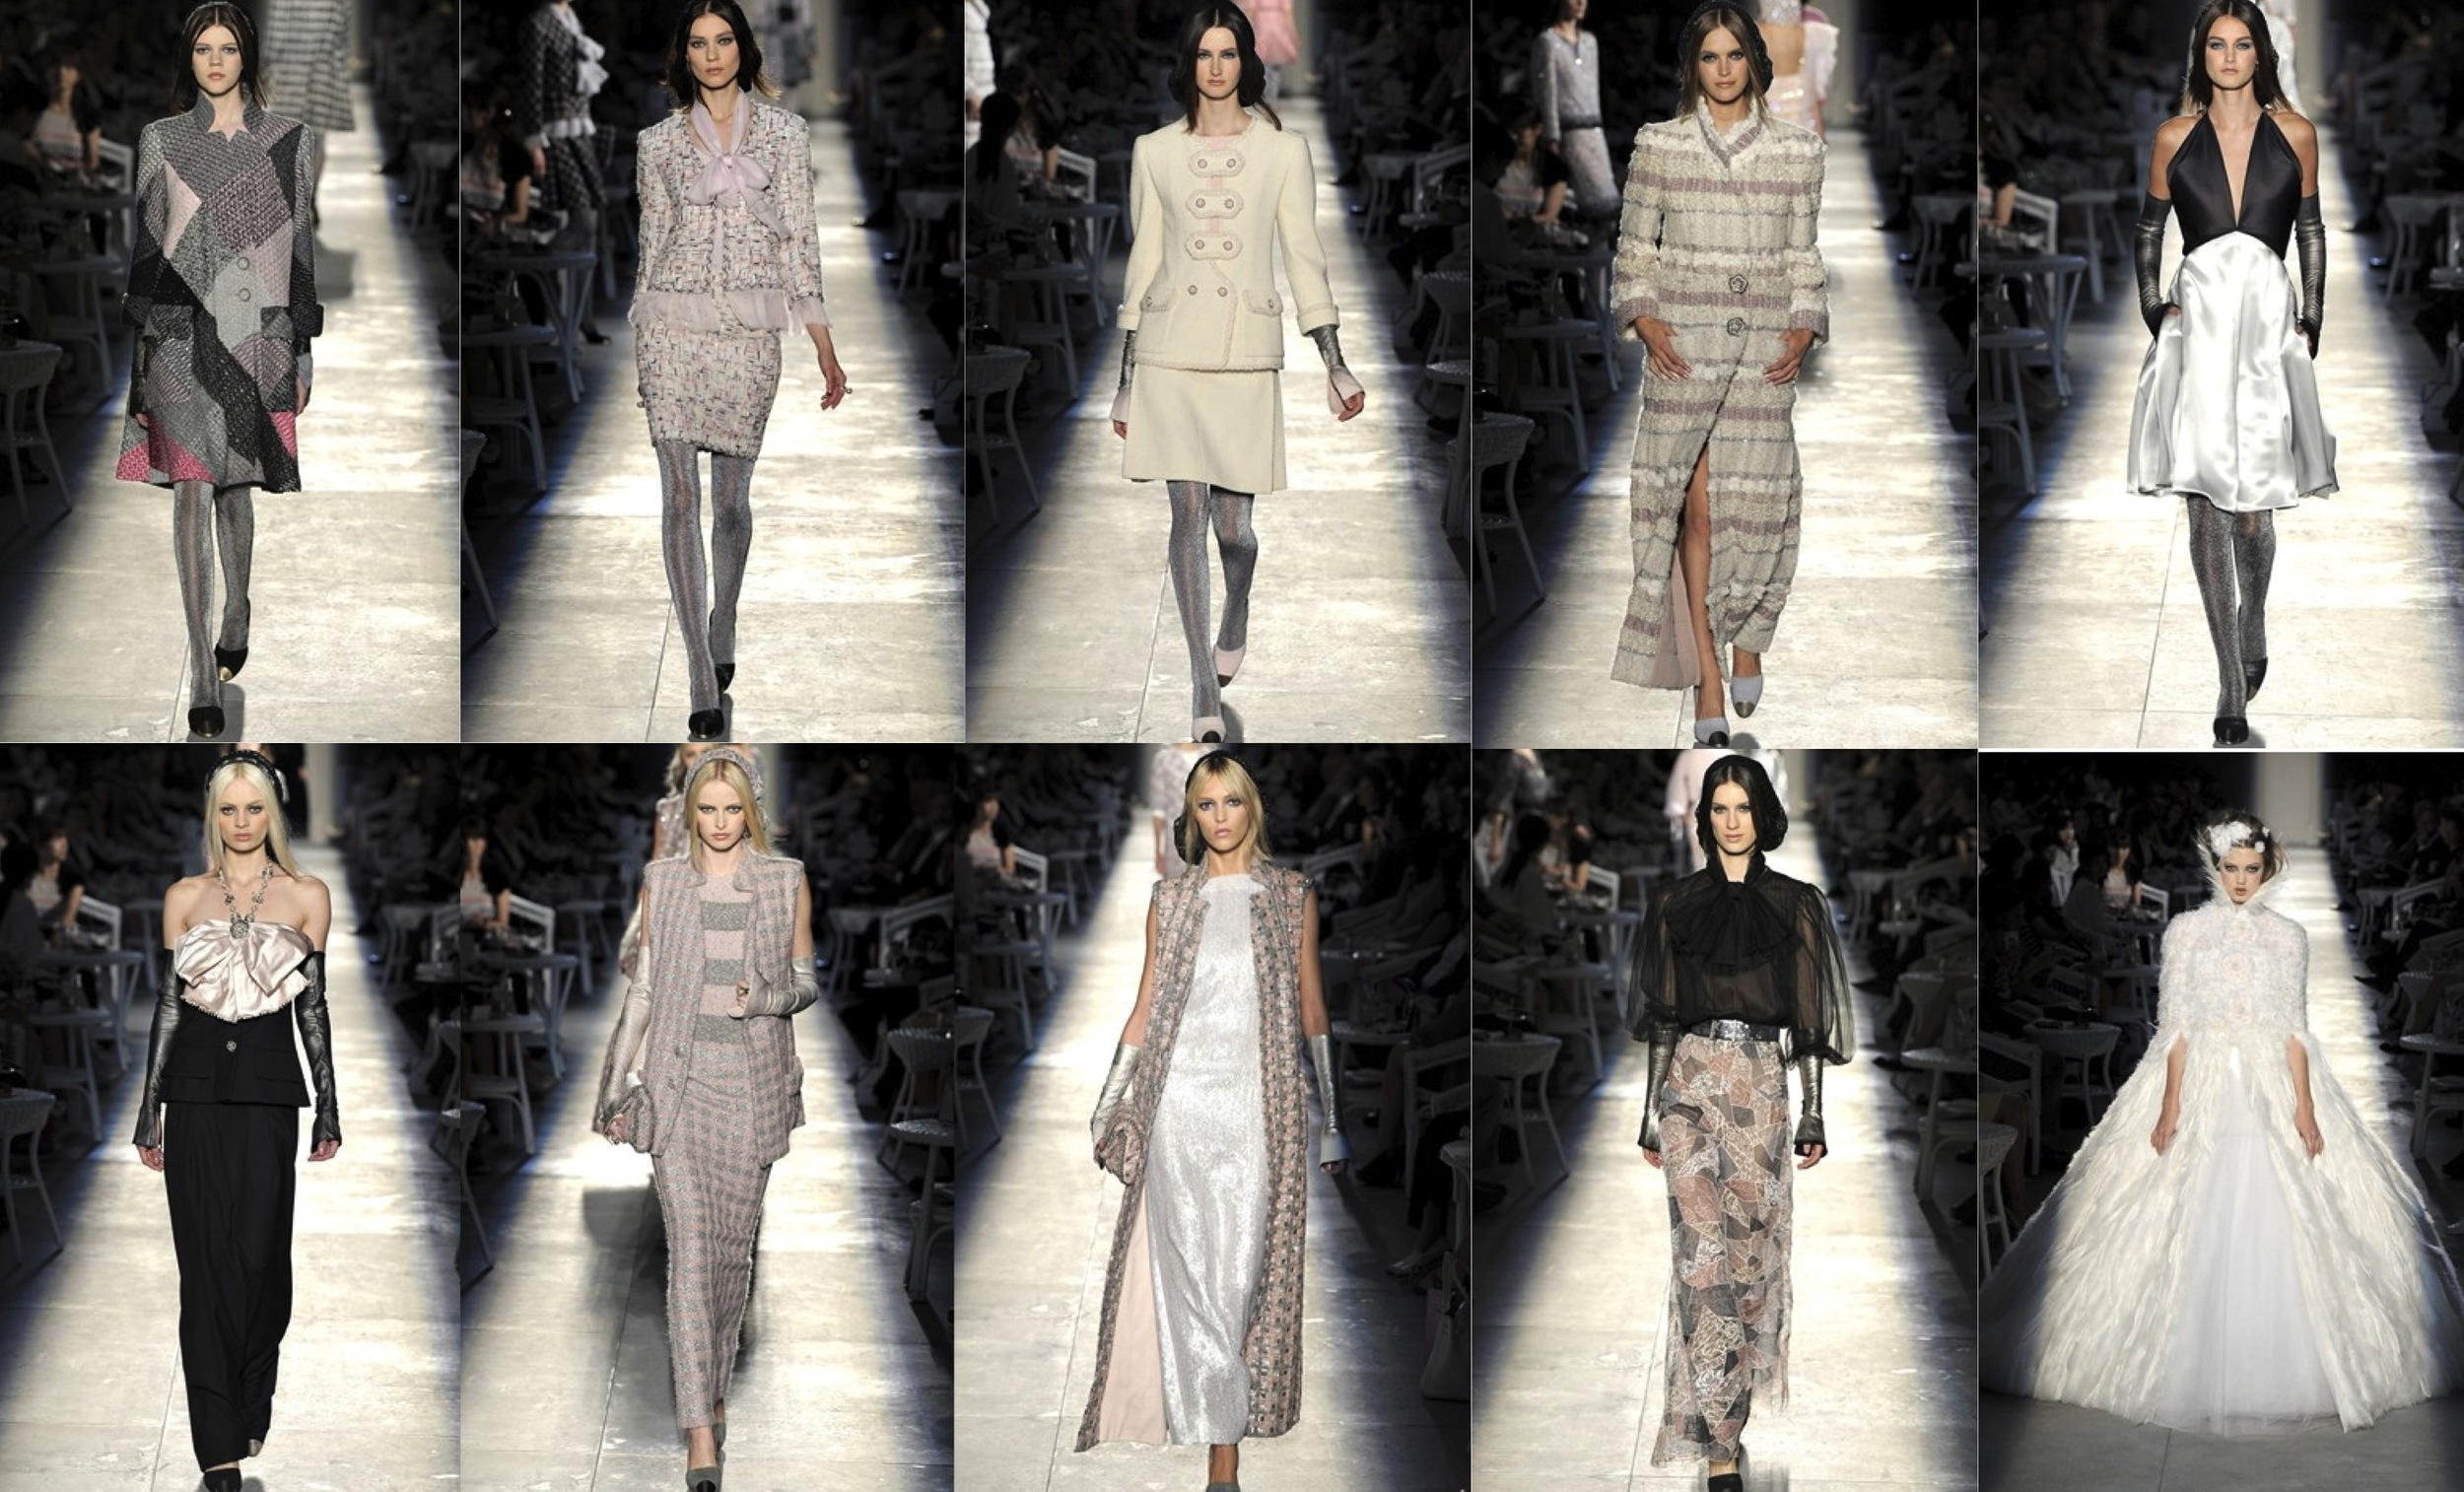 Chanel Fall Winter 2012 Couture Collection